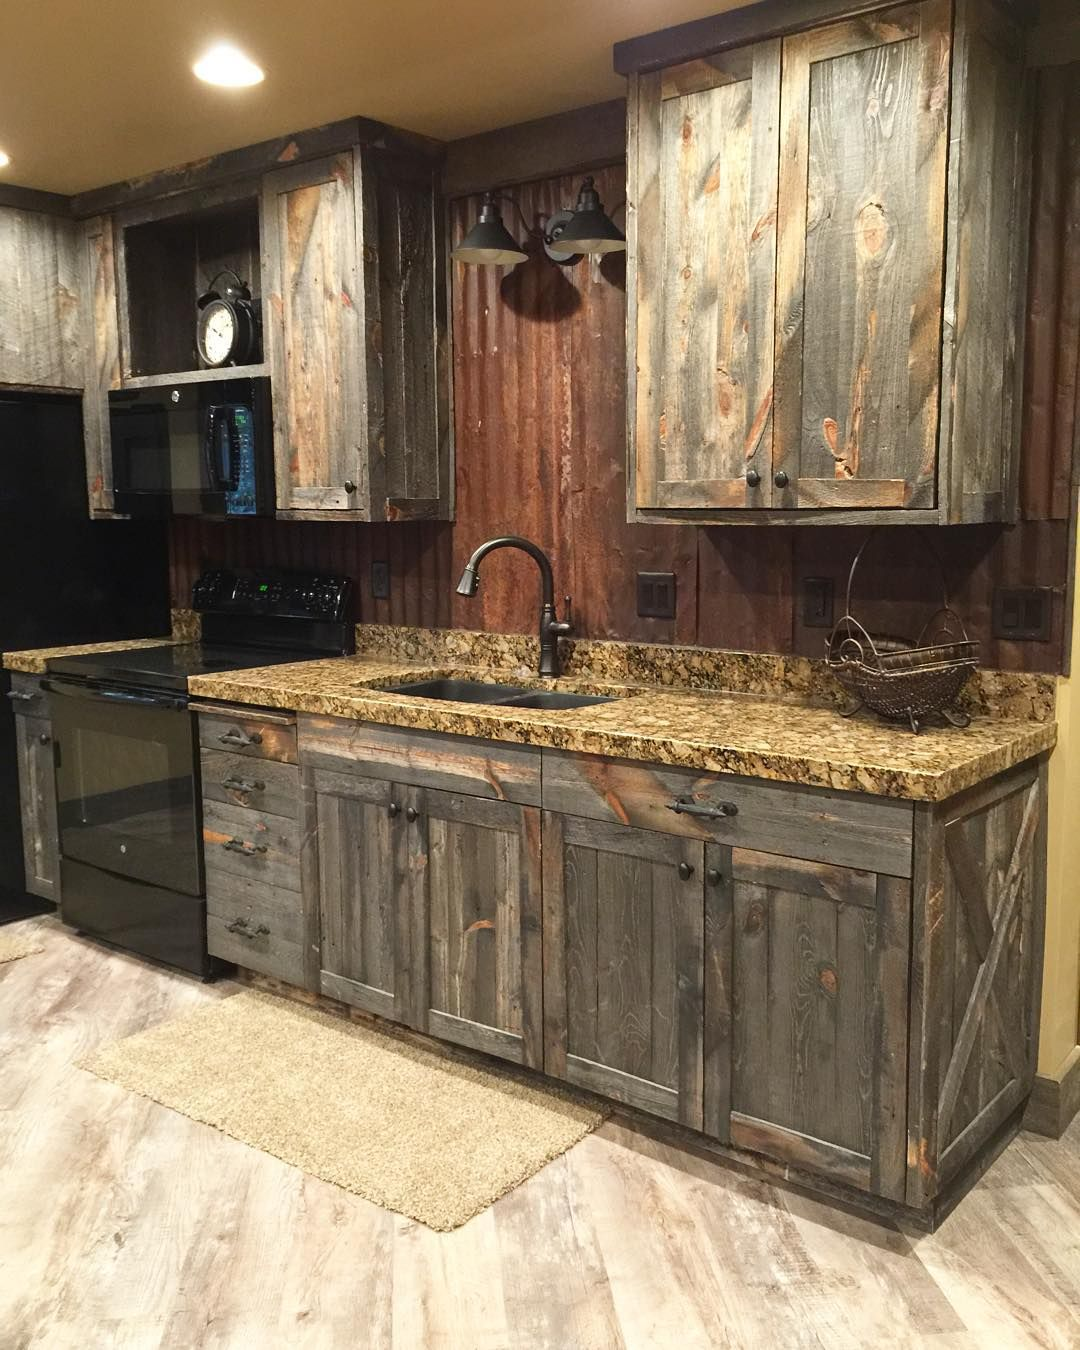 A little barnwood kitchen cabinets and corrugated steel backsplash. Love how rustic and homey it is! #cabininthewoods. & A little barnwood kitchen cabinets and corrugated steel backsplash ...